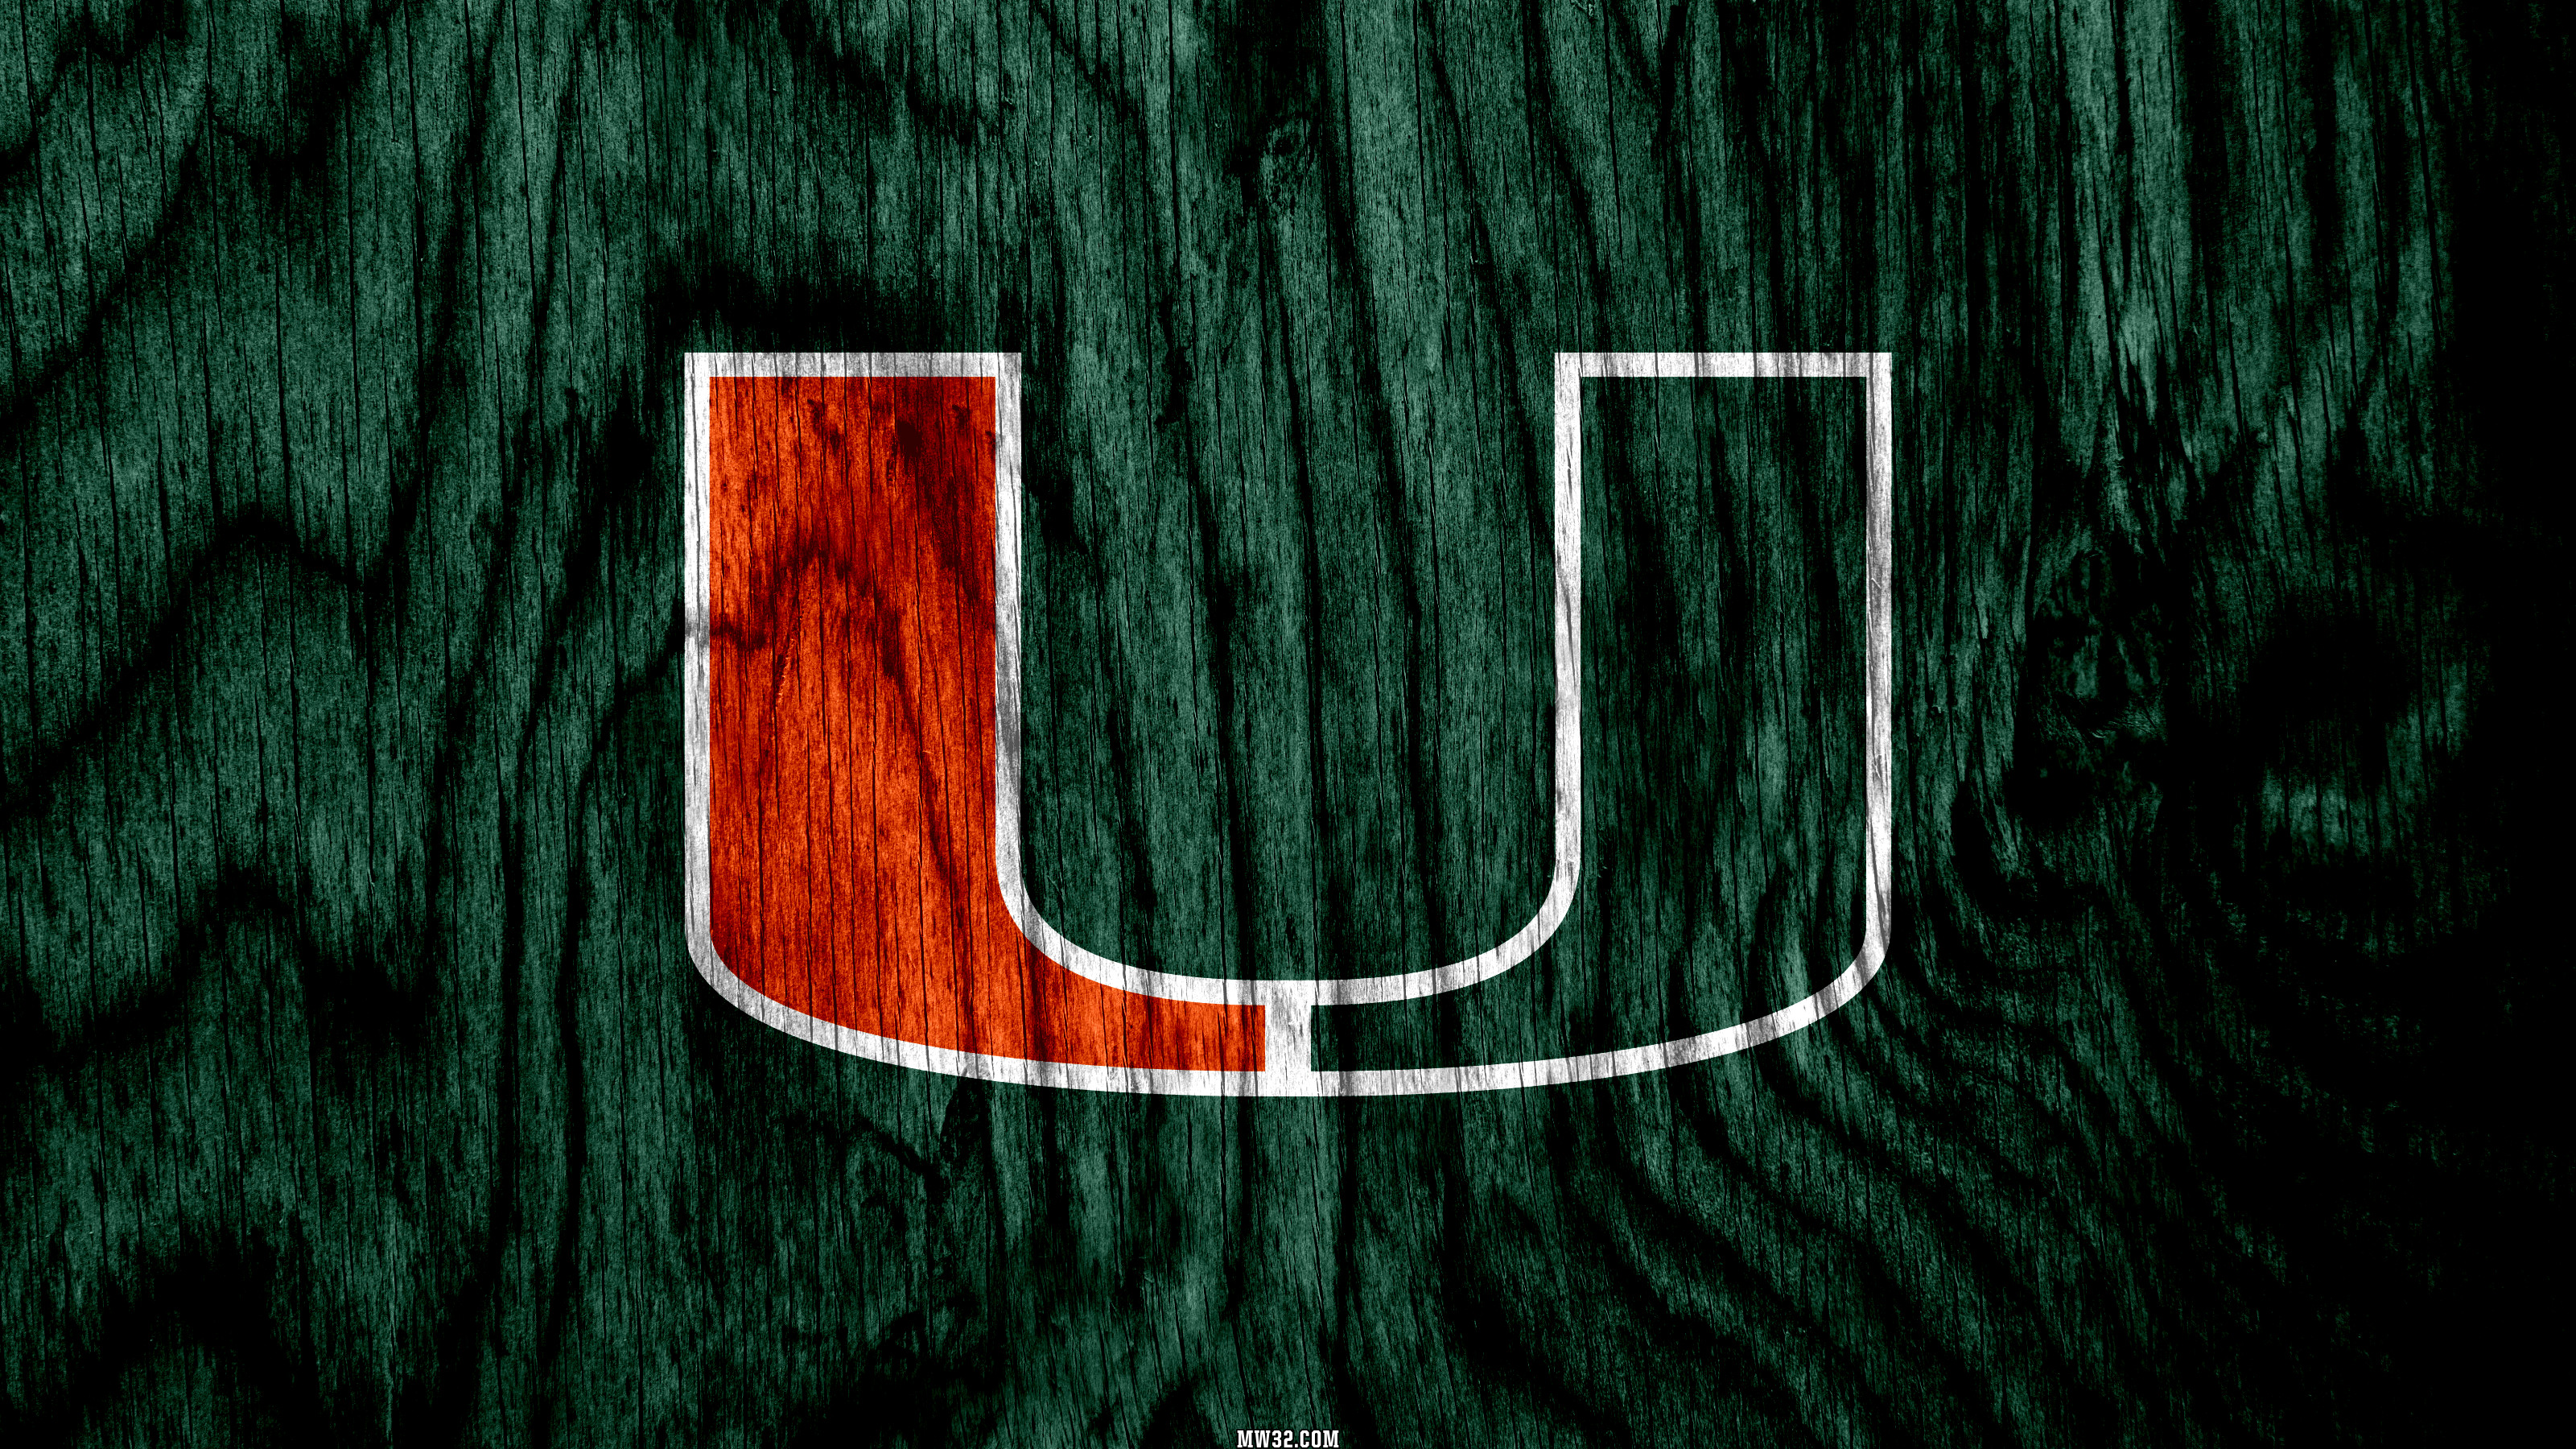 Hurricanes Hardwood Desktop Wallpaper : MiamiHurricanes